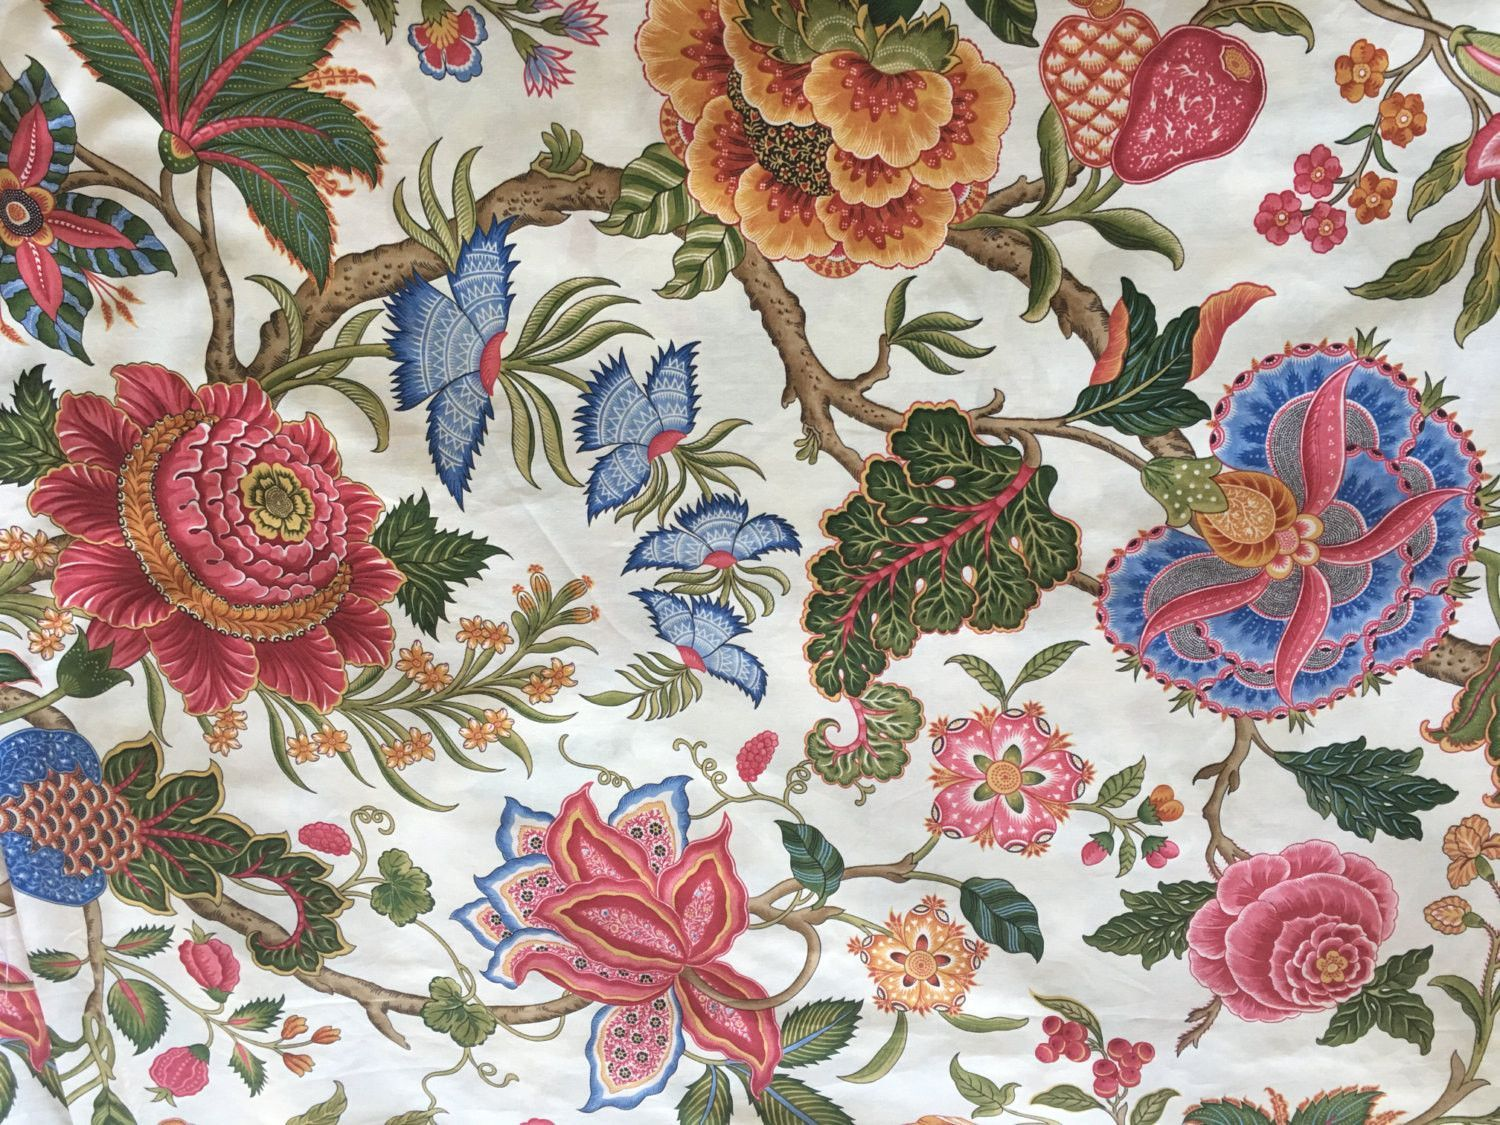 Brunschwig Fils Nizam Floral Cotton Fabric by the Yard